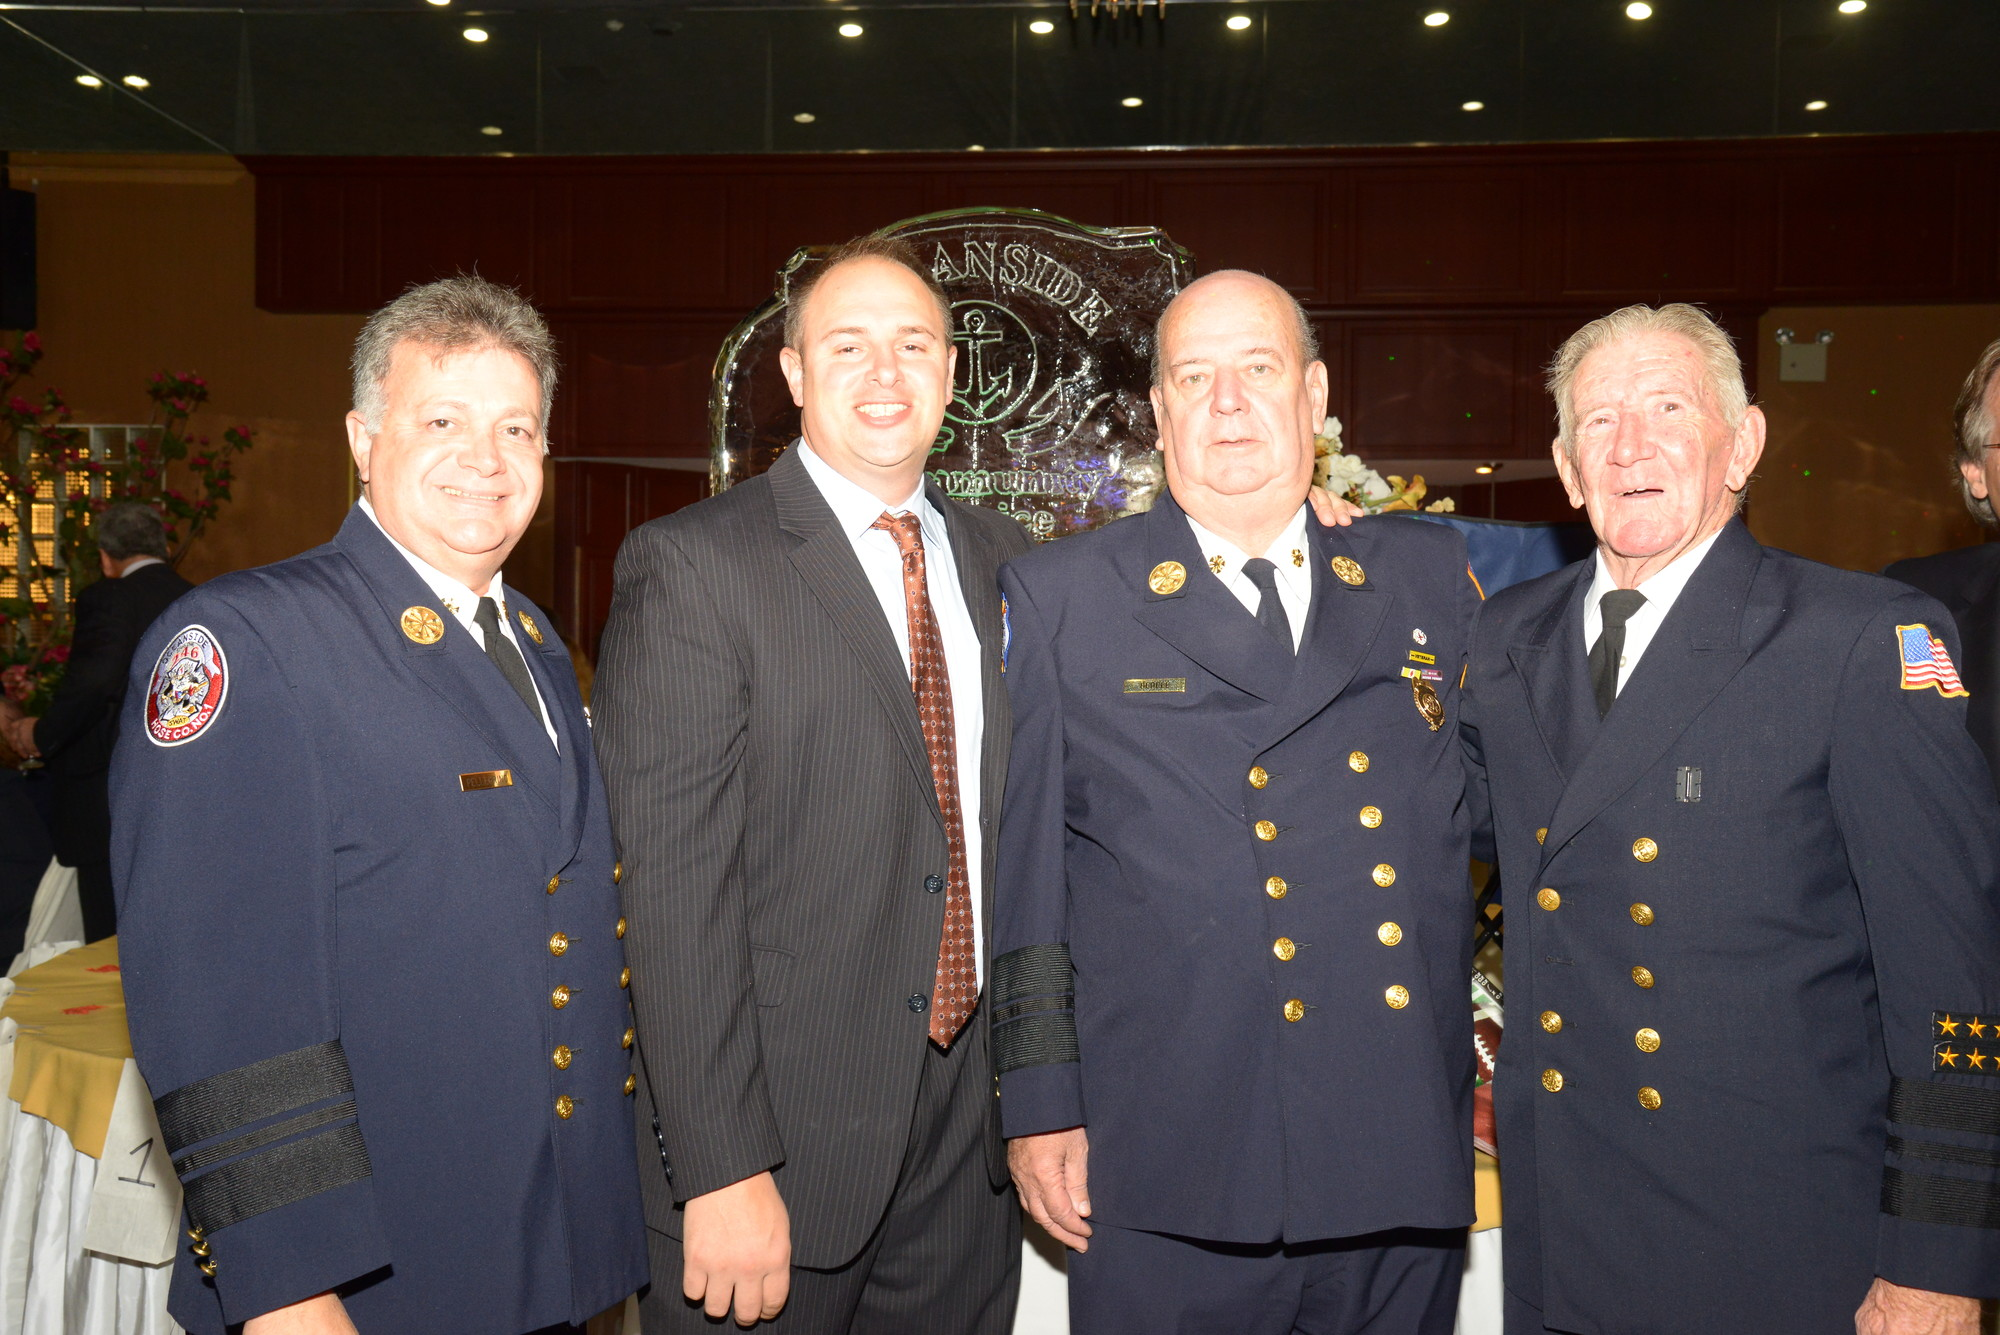 Showing their support, Chief Thomas Pellegrino, far left, Frank Criscuolo, Chief Richard Bedell and Chief Red Robertson of the Oceanside Fire Department attended the Oceanside Community Service's annual fundraiser.